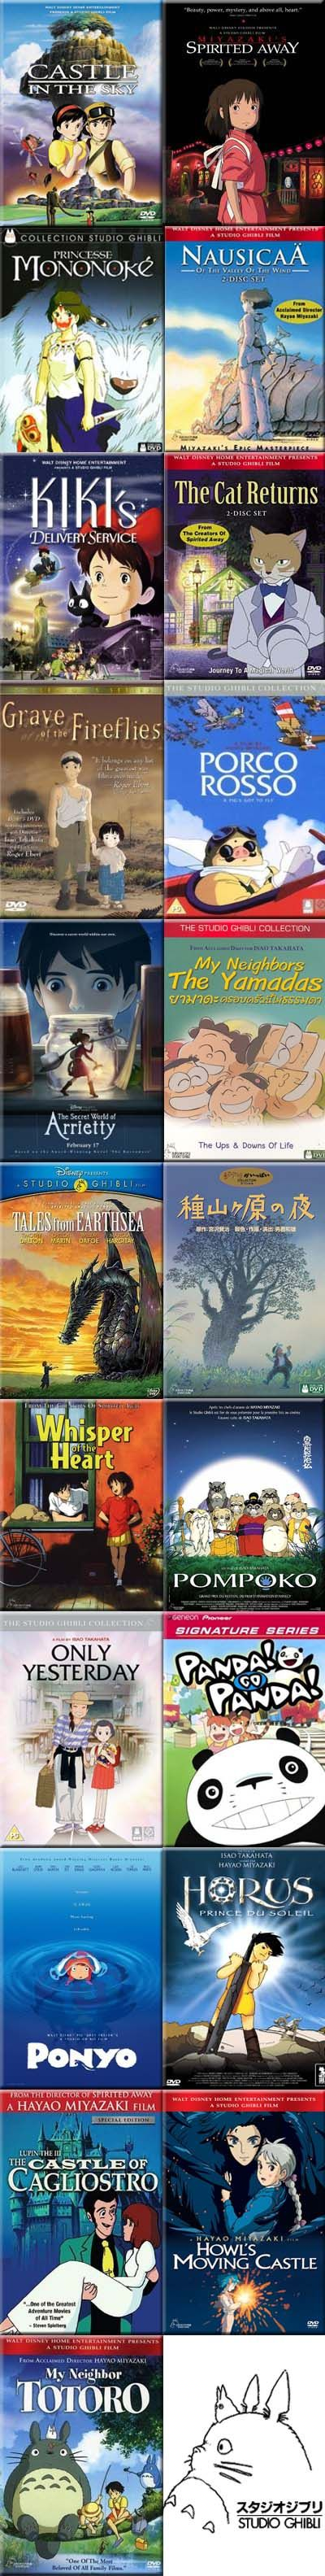 Studio Ghibli. Laputa: Castle in the Sky, Spirited Away, Princess Mononoke, Nausicaa of the Valley of the Wind, Kikis Delivery Service, The Cat Returns, Grave of the Fireflies, Porco Rosso, The Secret World of Arrietty, My Neighbors the Yamadas, Tales from Earthsea, Night of Taneyamagahara, Whisper of the Heart, Pom Poko, Only Yesterday, Panda! Go Panda!, Ponyo on the Cliff by the sea, Horus: Prince of the Sun, Lupin III: Castle of Cagliostro, Howls Moving Castle, My Neighbor Totoro…